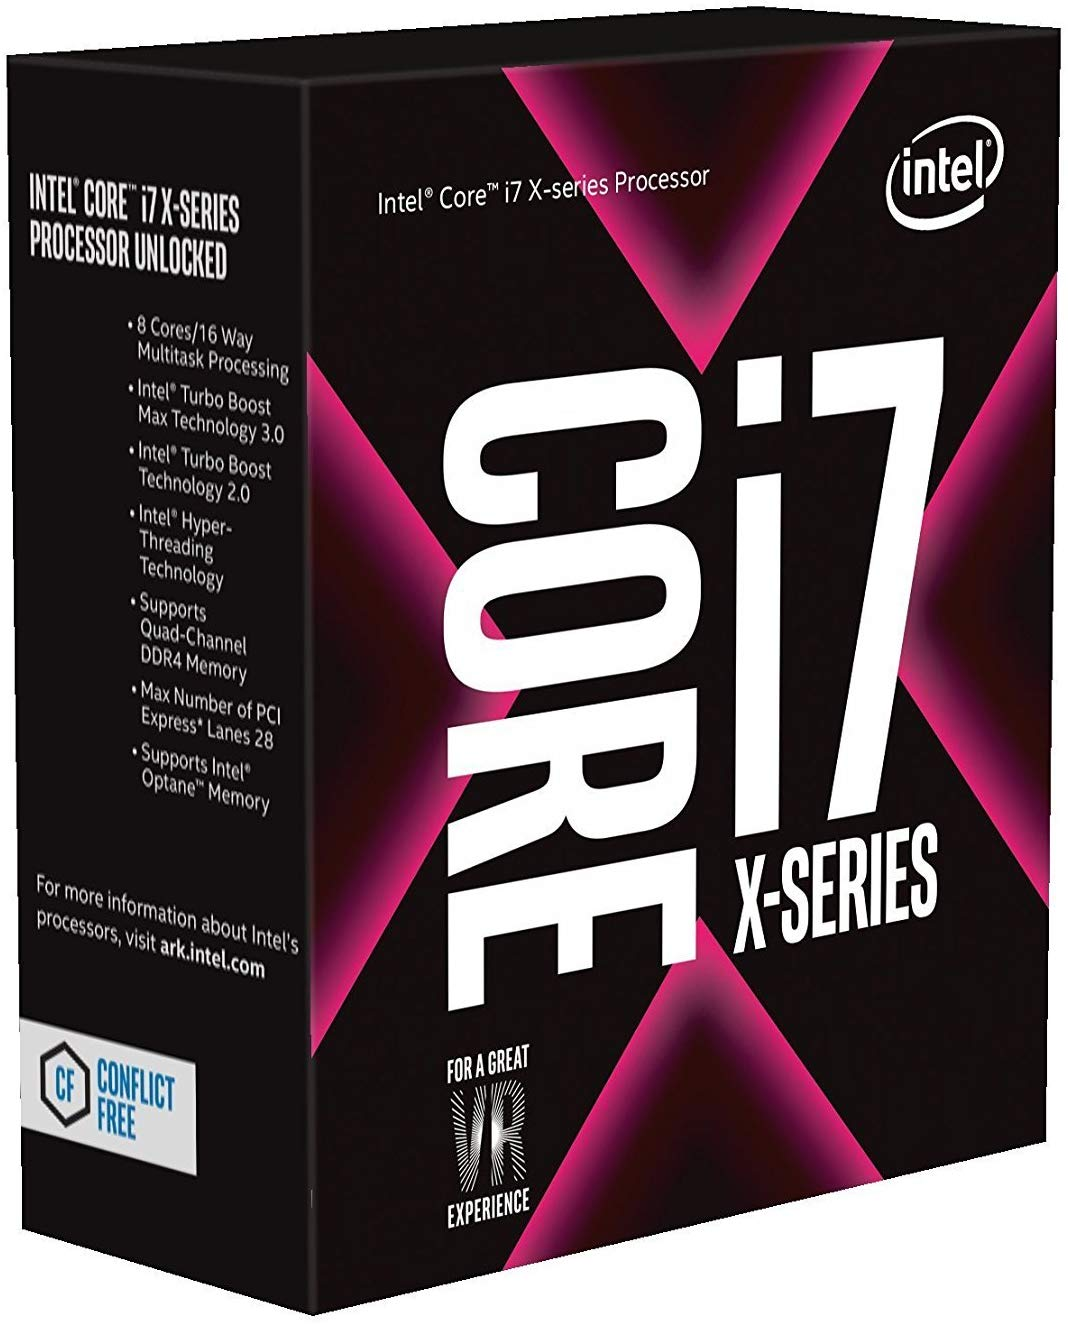 Intel Core i7-7820X X-Series Processor 8 Cores up to 4.3 GHz Turbo Unlocked LGA2066 X299 Series 140W